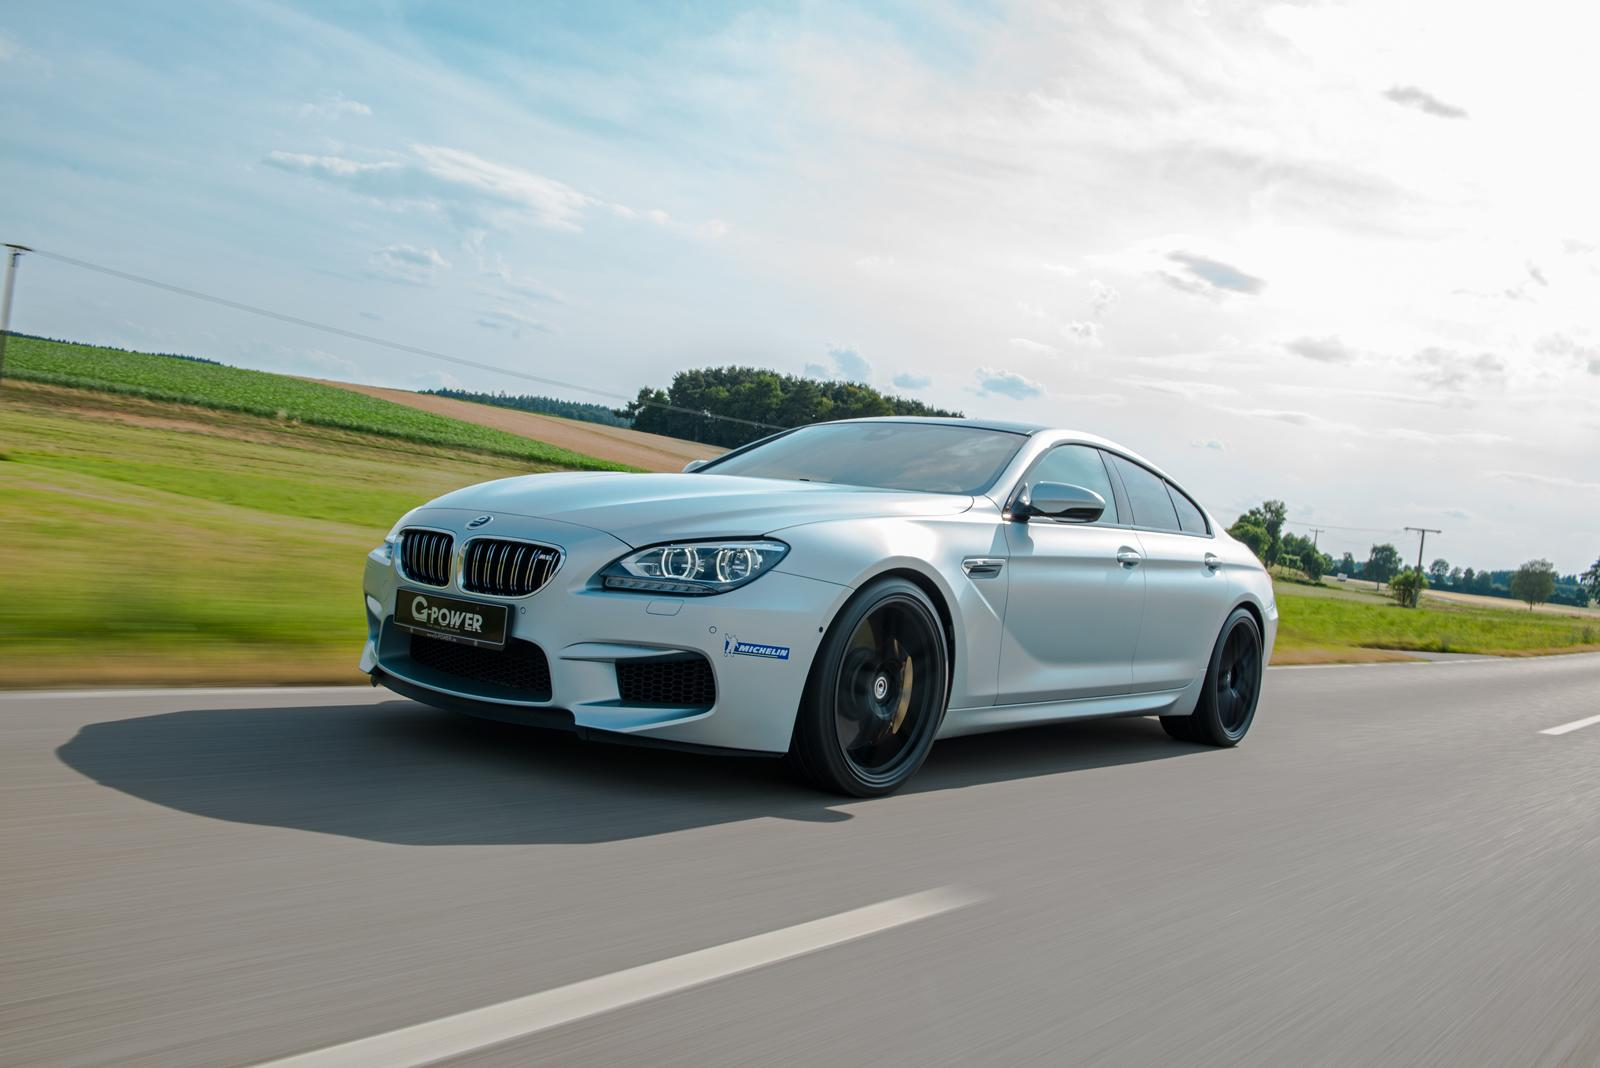 G-Power BMW M6 Gran Coupé